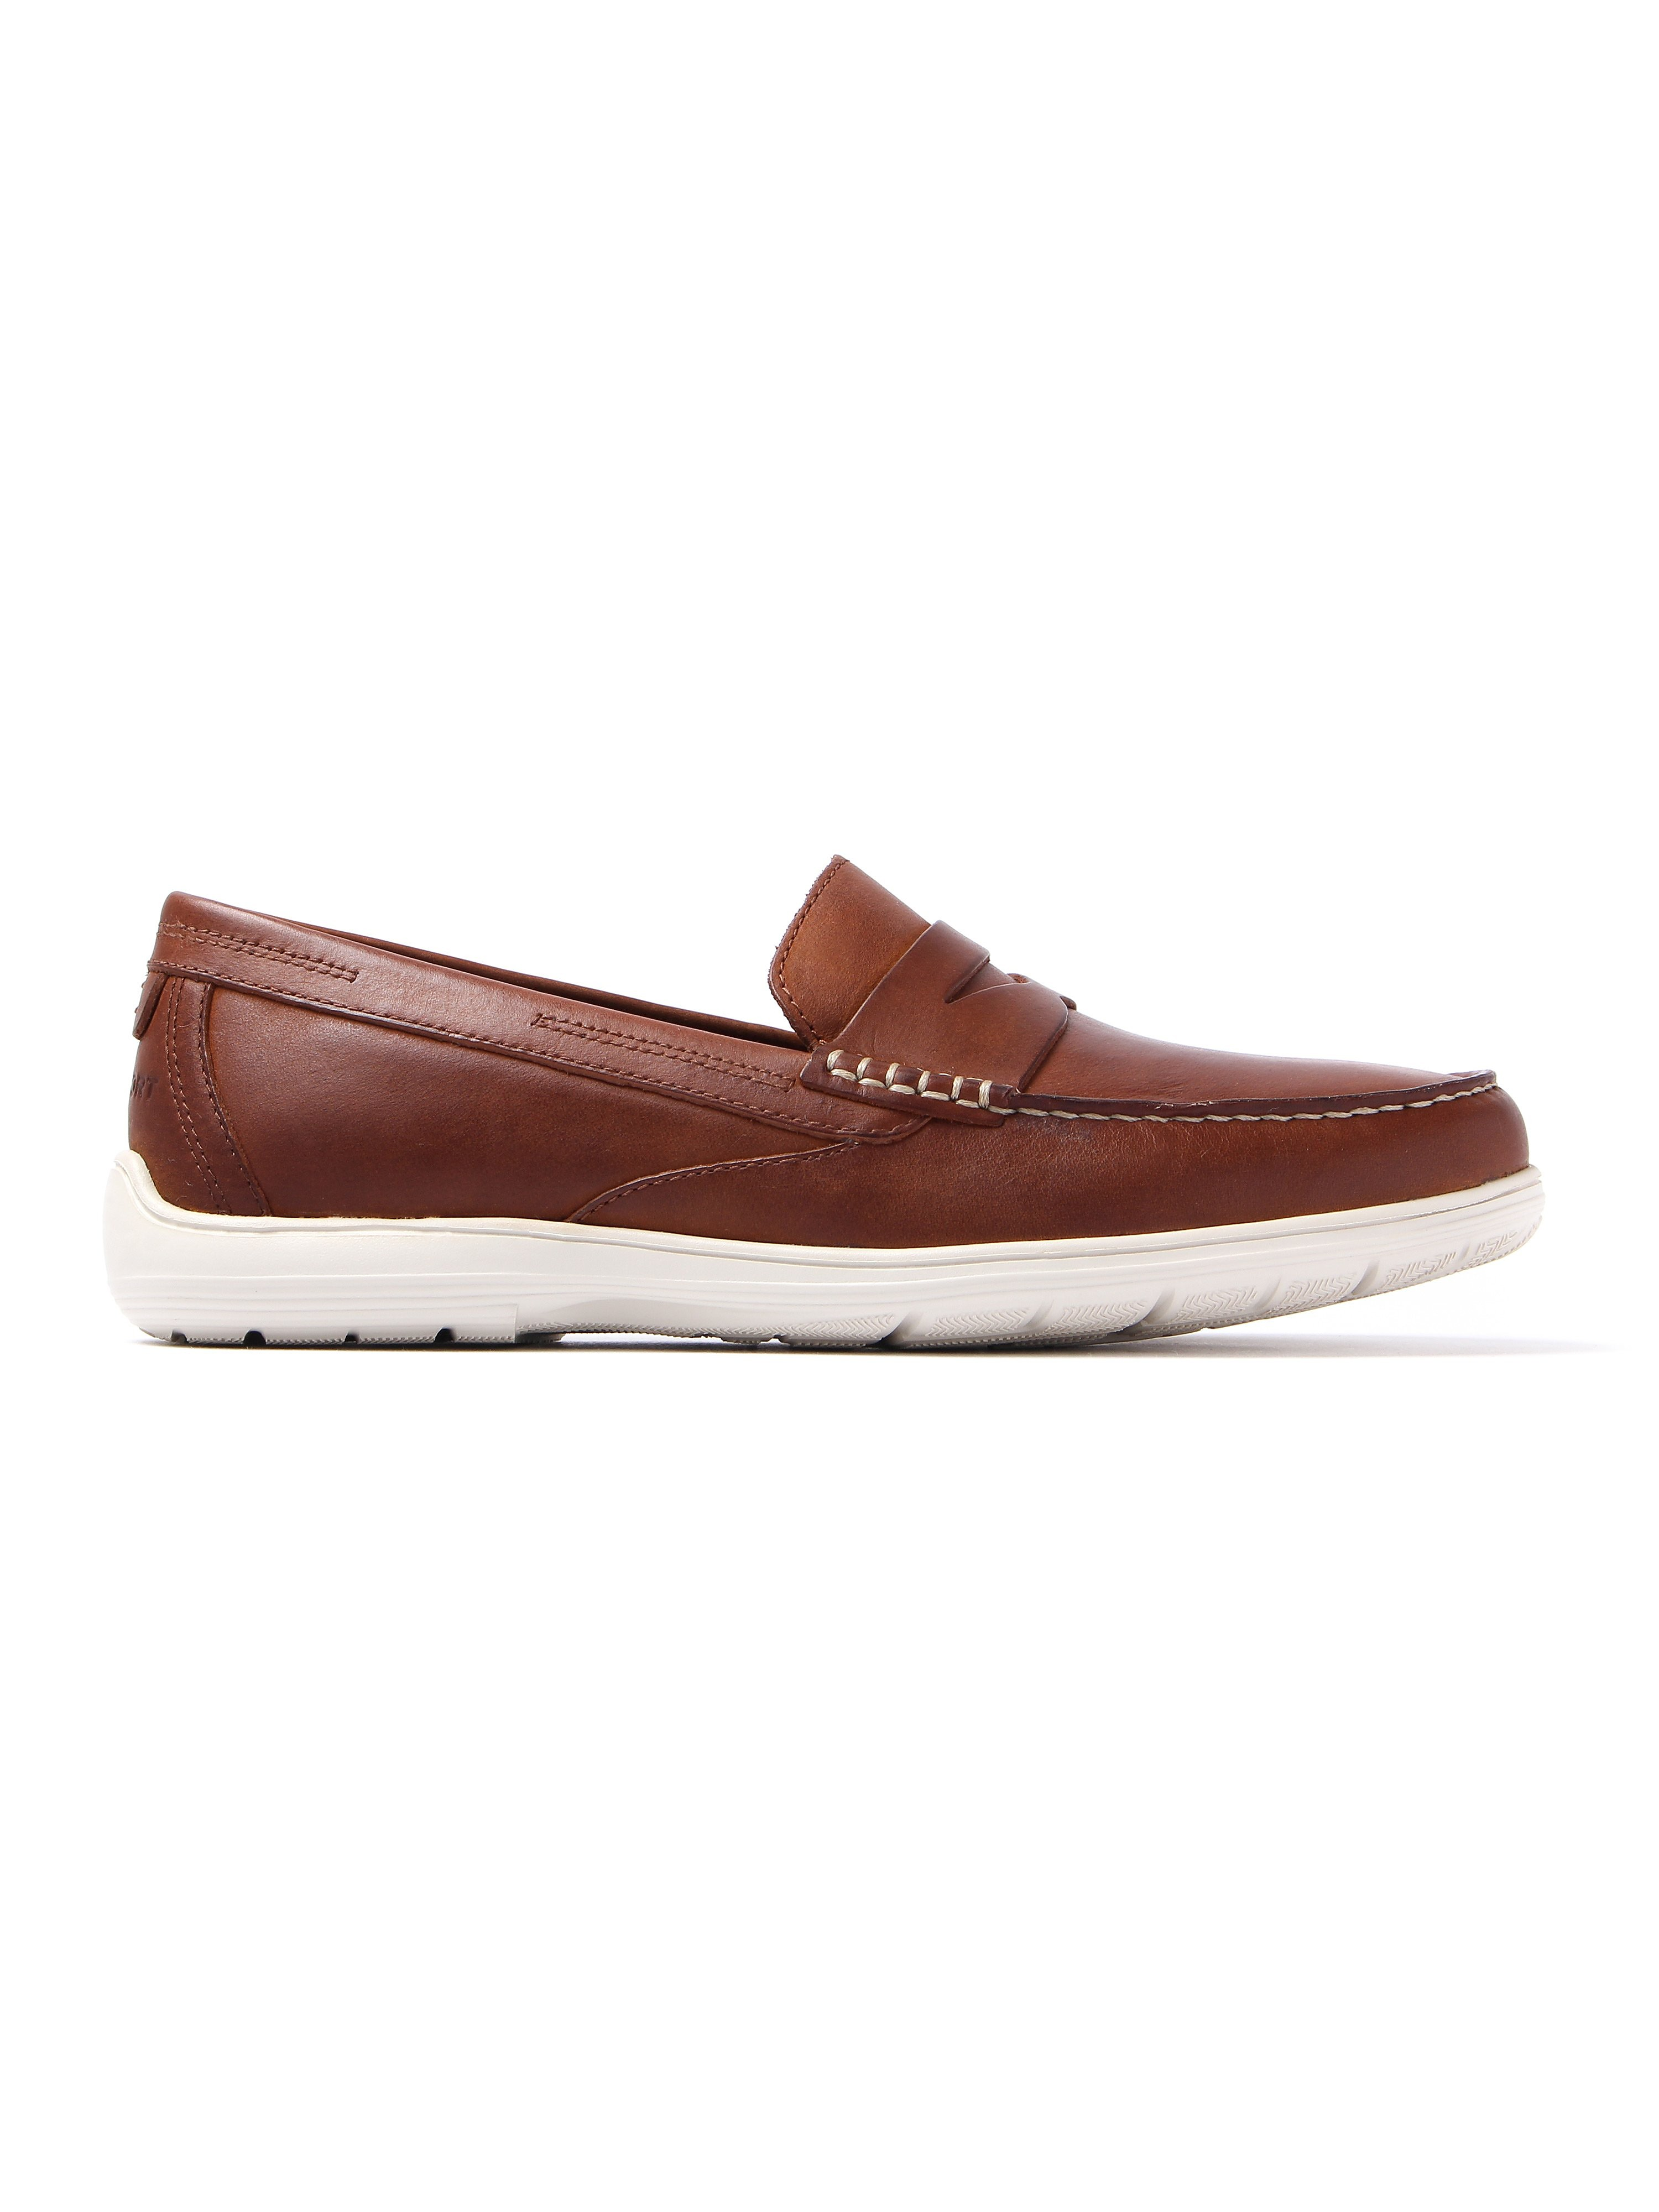 Rockport Men's Total Motion Nubuck Penny Loafers - Tan